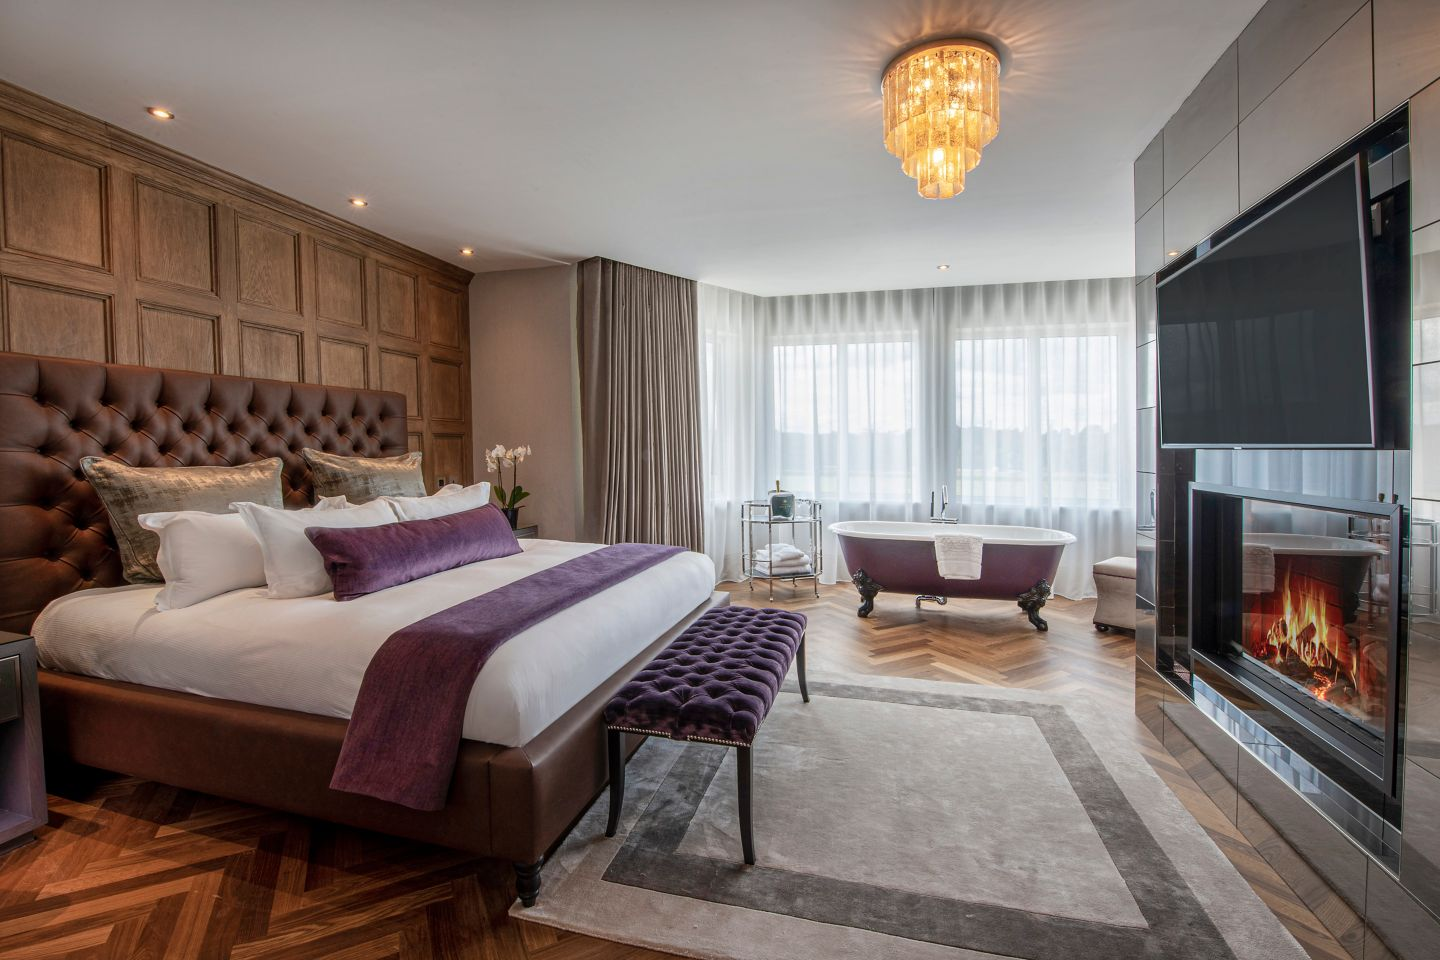 The Penthouse suite bedroom at the Old Course Hotel, St Andrews, with a fireplace and freestanding bath